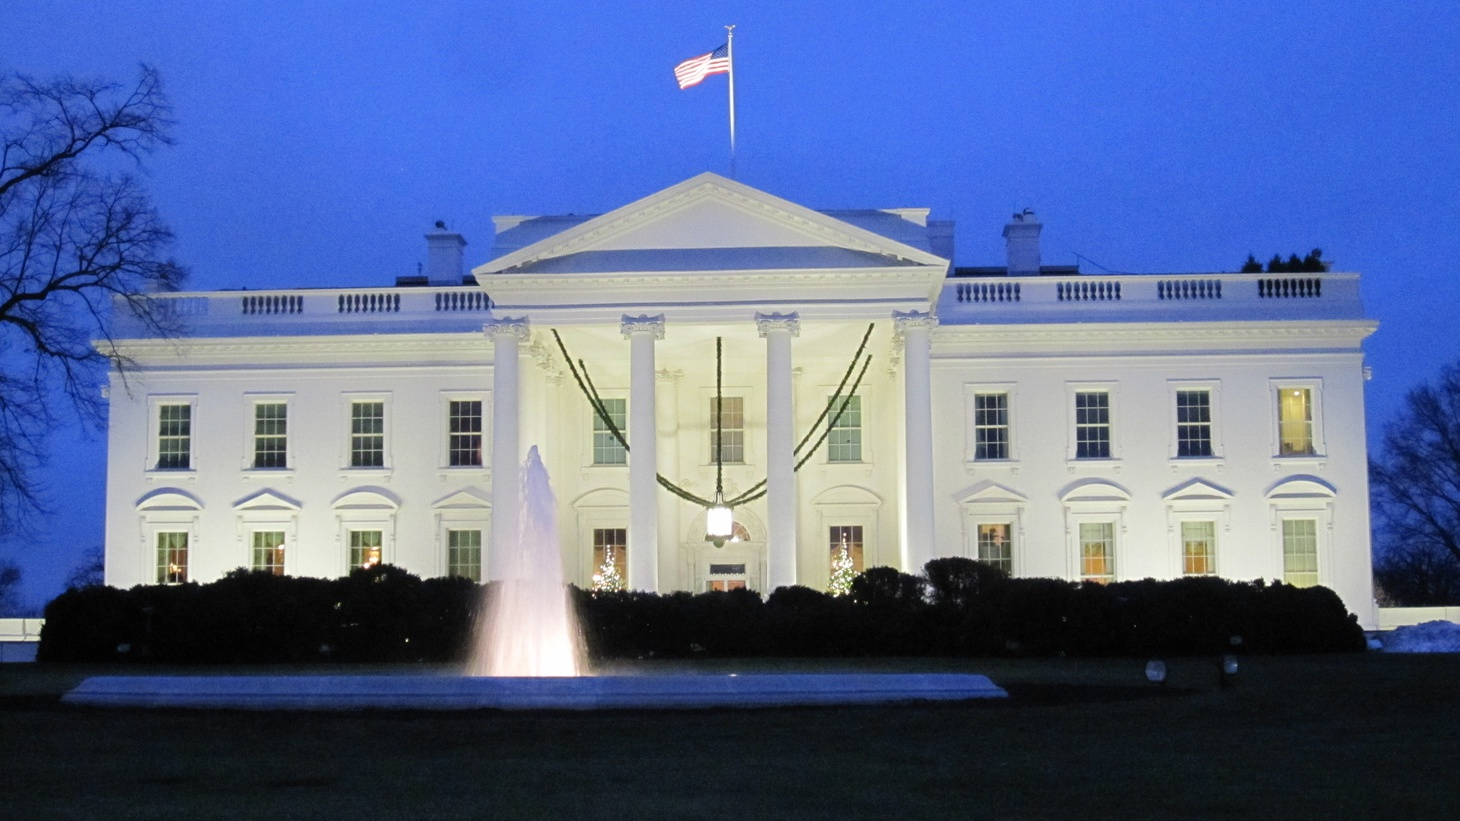 The executive branch, the White House.